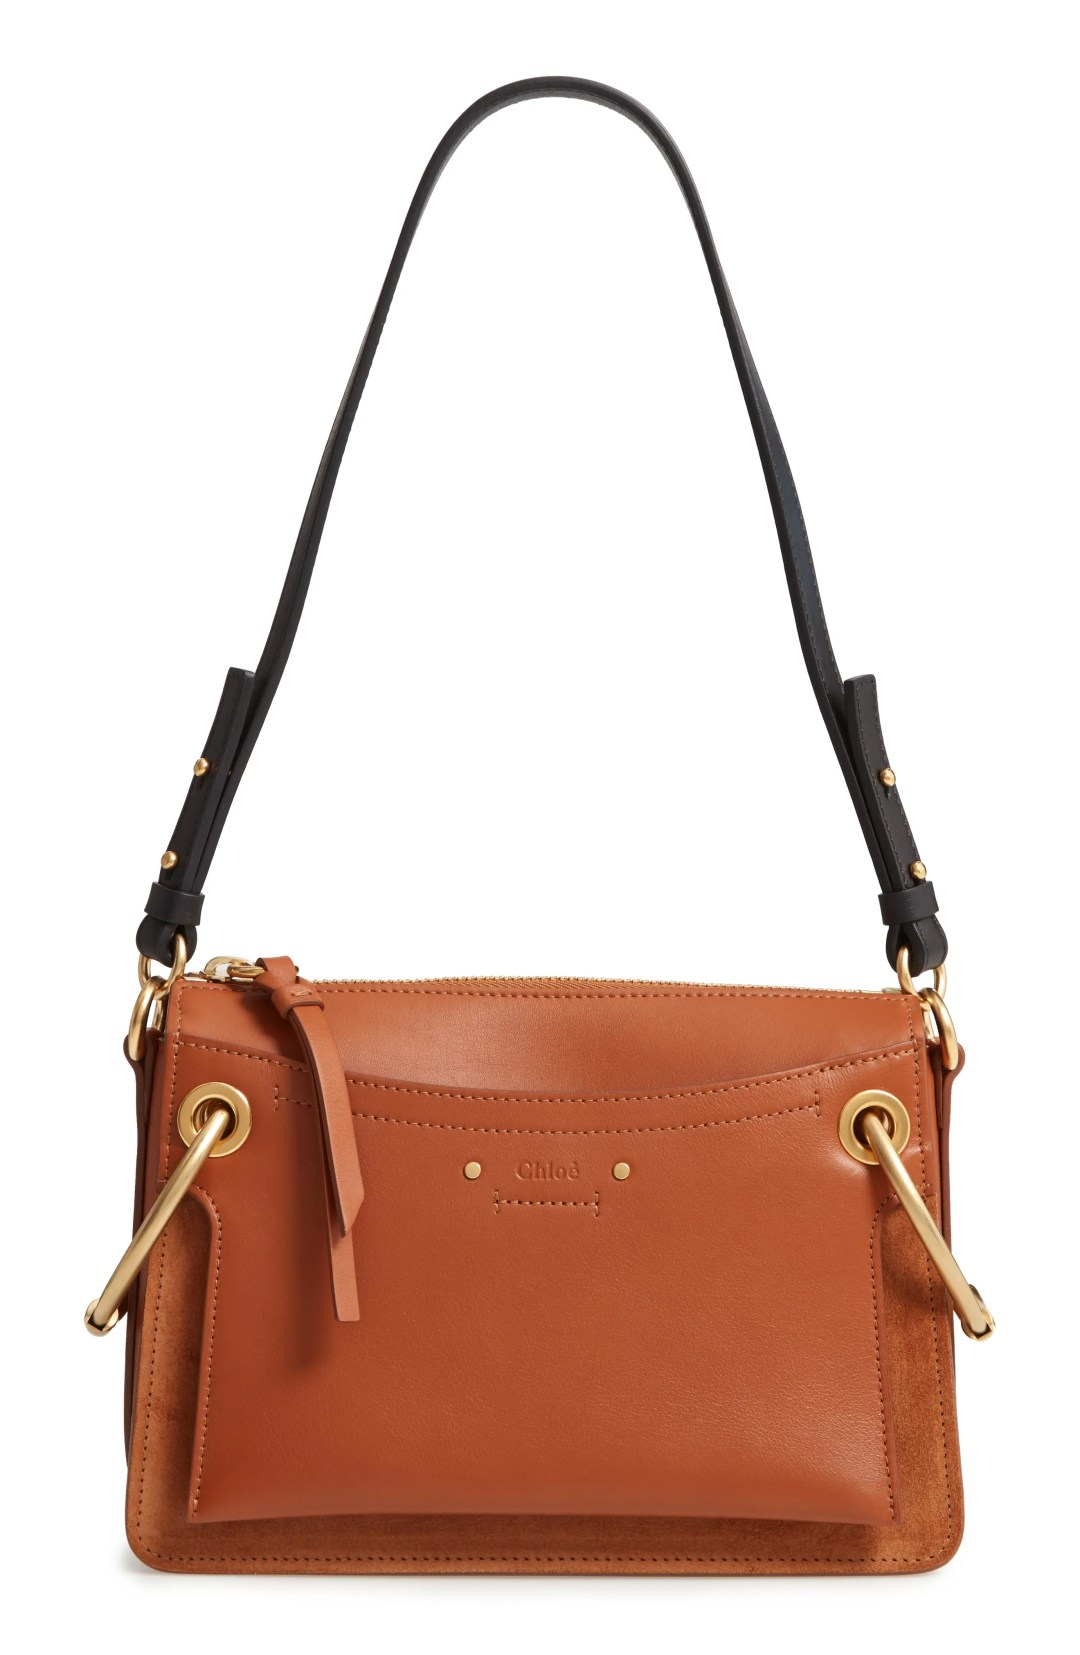 6dfd9334b Chloé Small Faye Day Leather Shoulder Bag